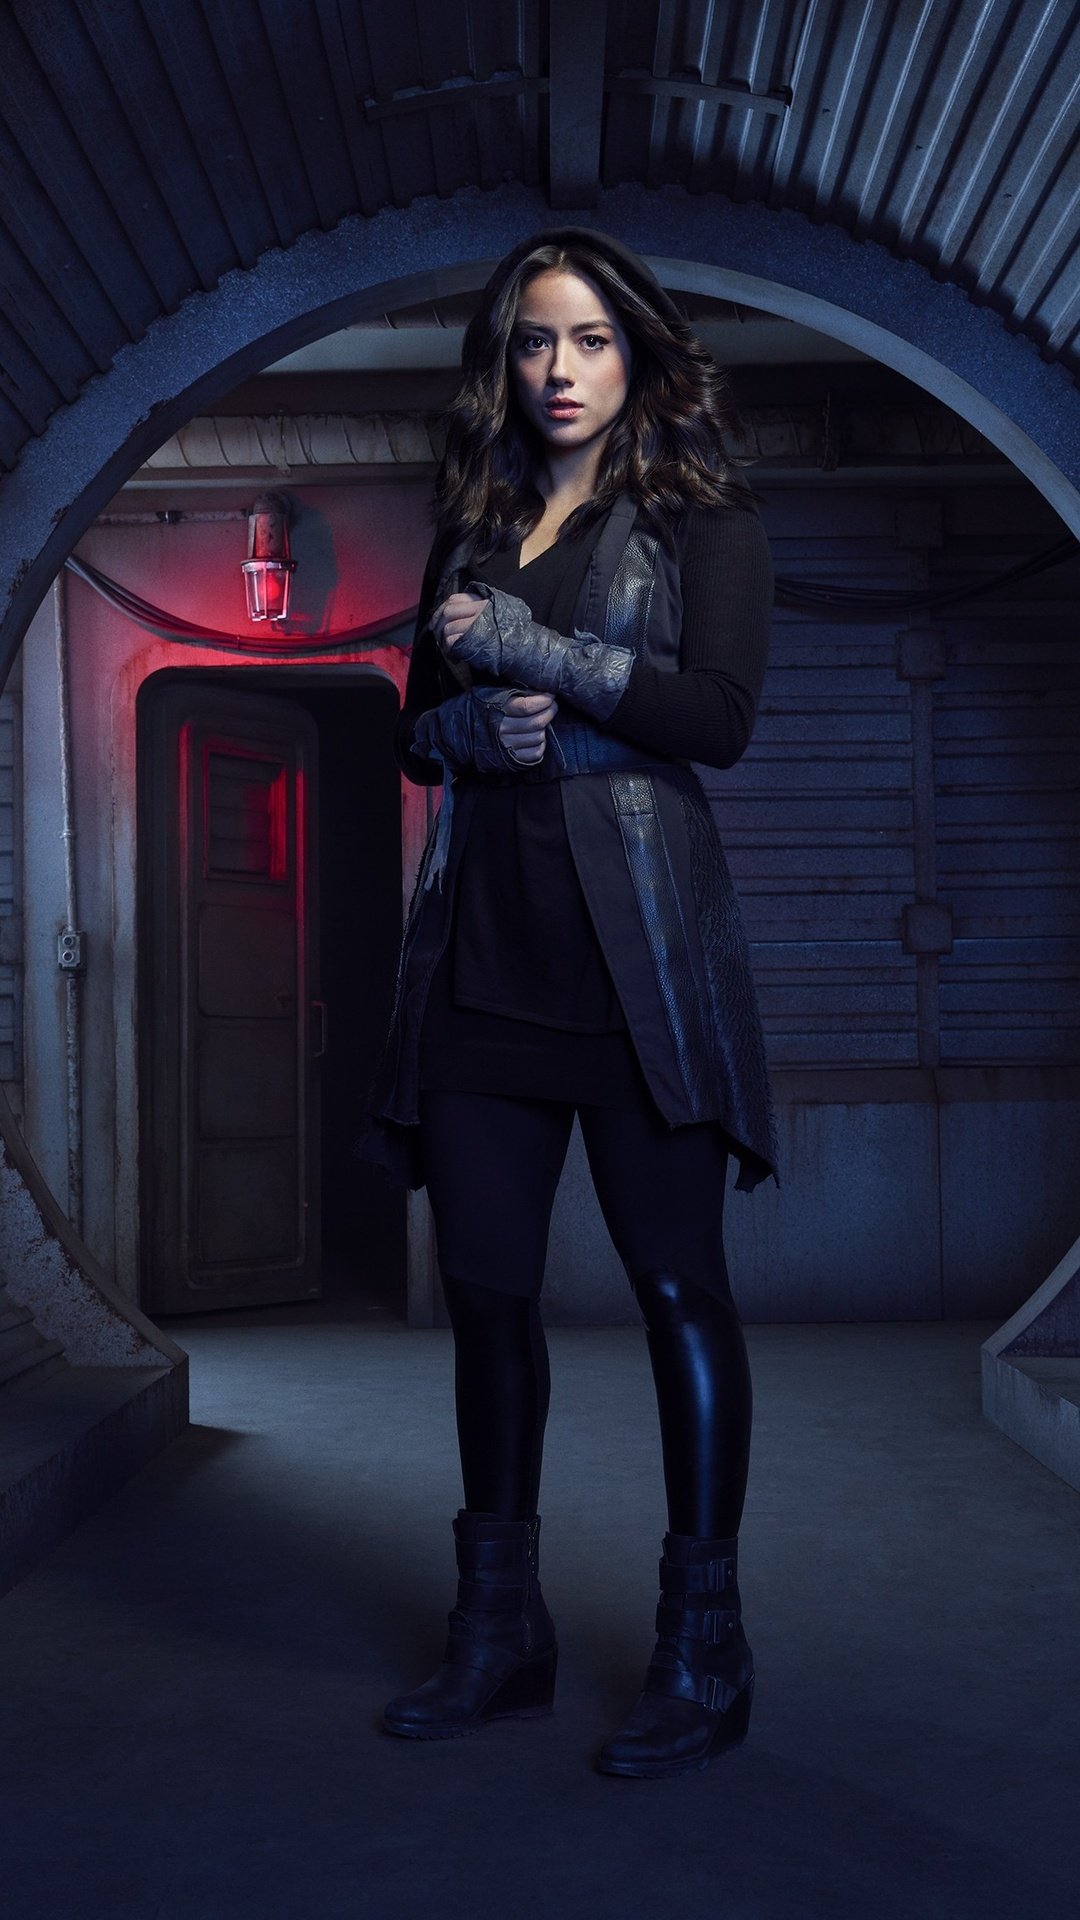 daisy-johnson-agents-of-shield-season-5-e8.jpg